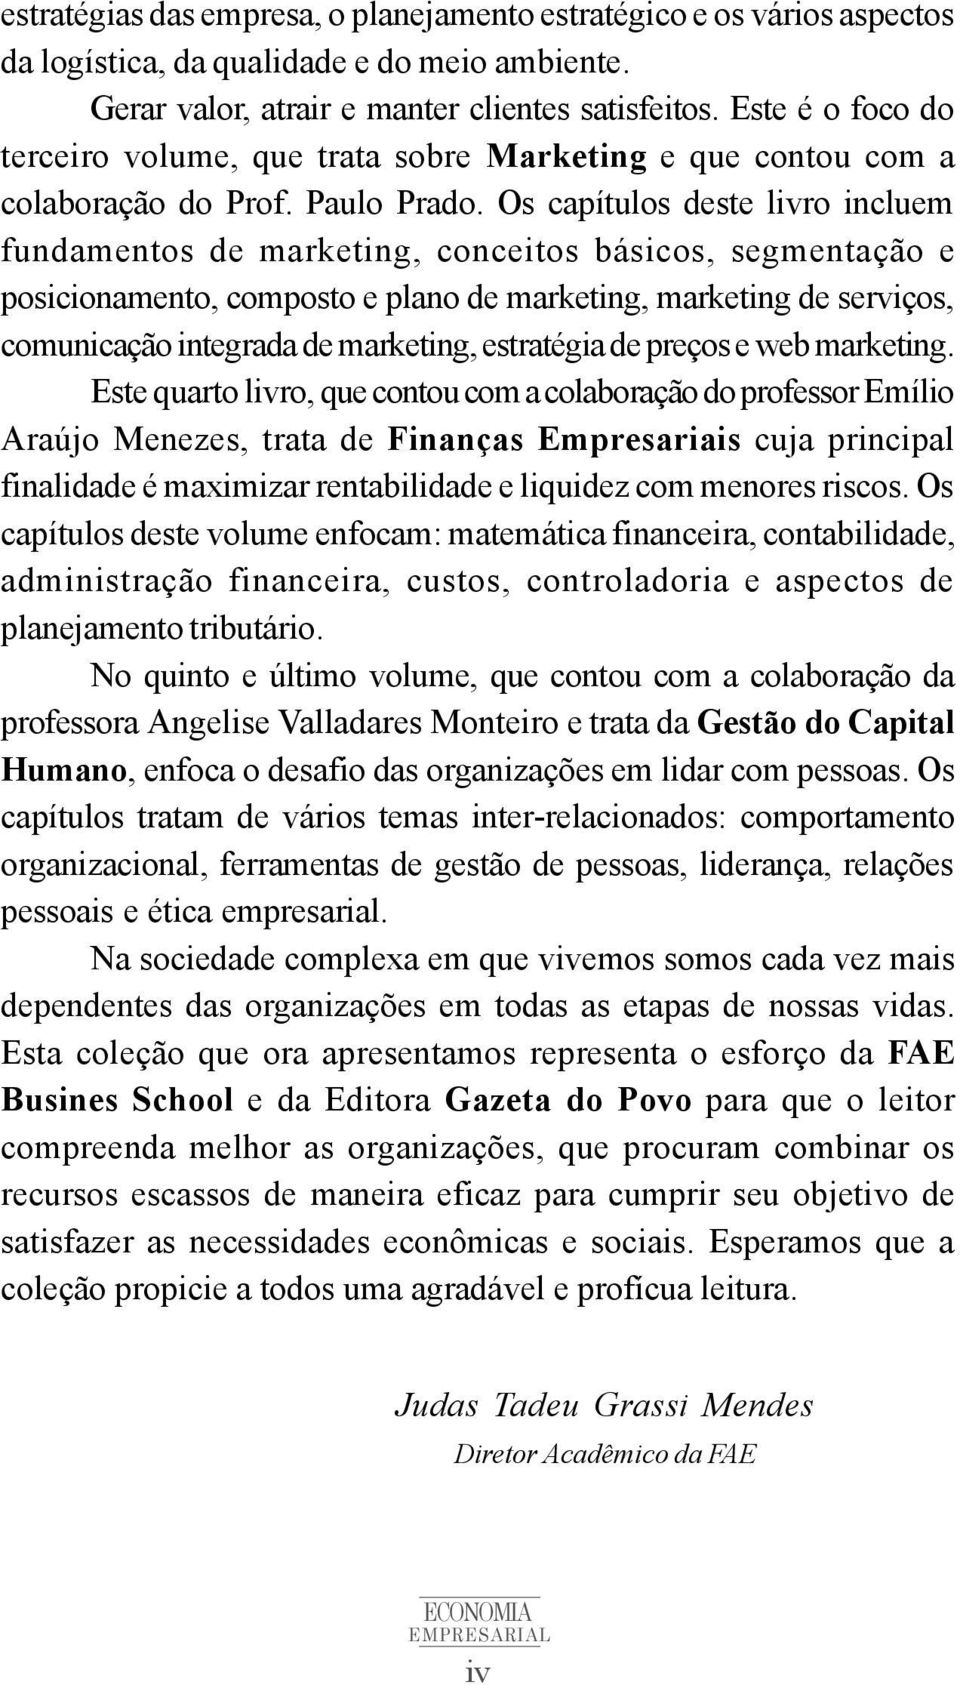 Os capítulos deste livro incluem fundamentos de marketing, conceitos básicos, segmentação e posicionamento, composto e plano de marketing, marketing de serviços, comunicação integrada de marketing,